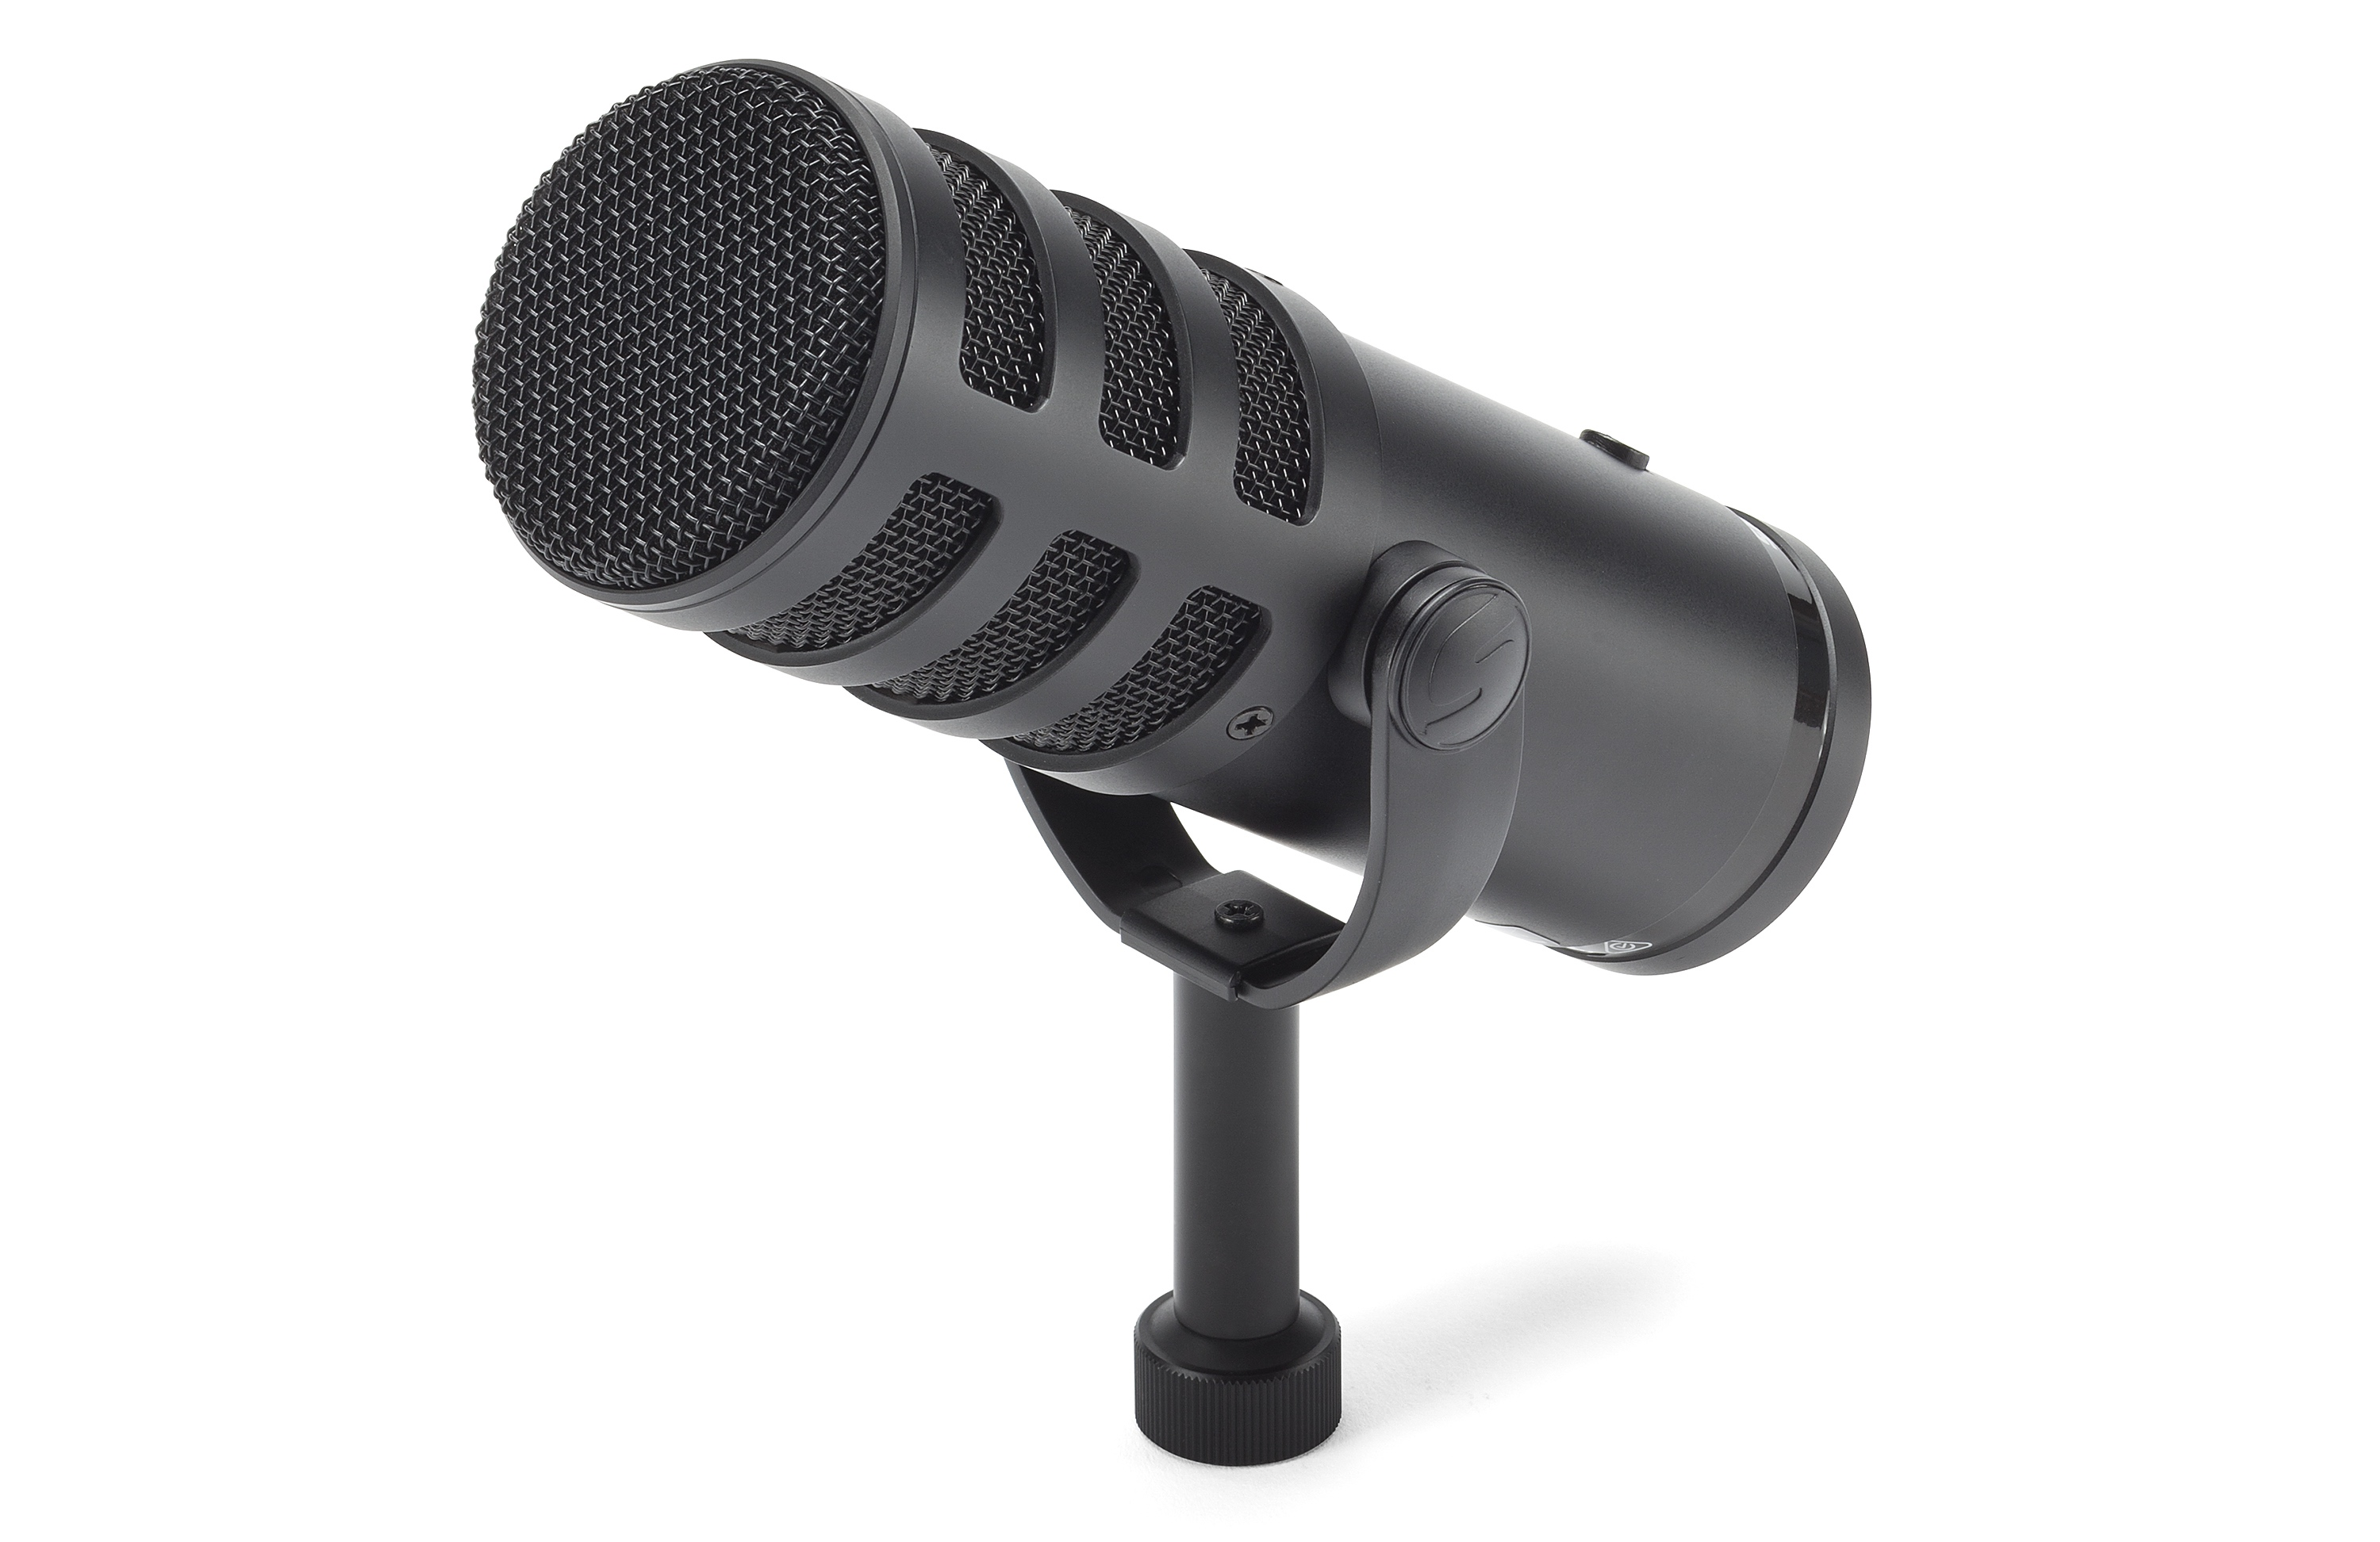 Hybrid USB-C microphone from Samson